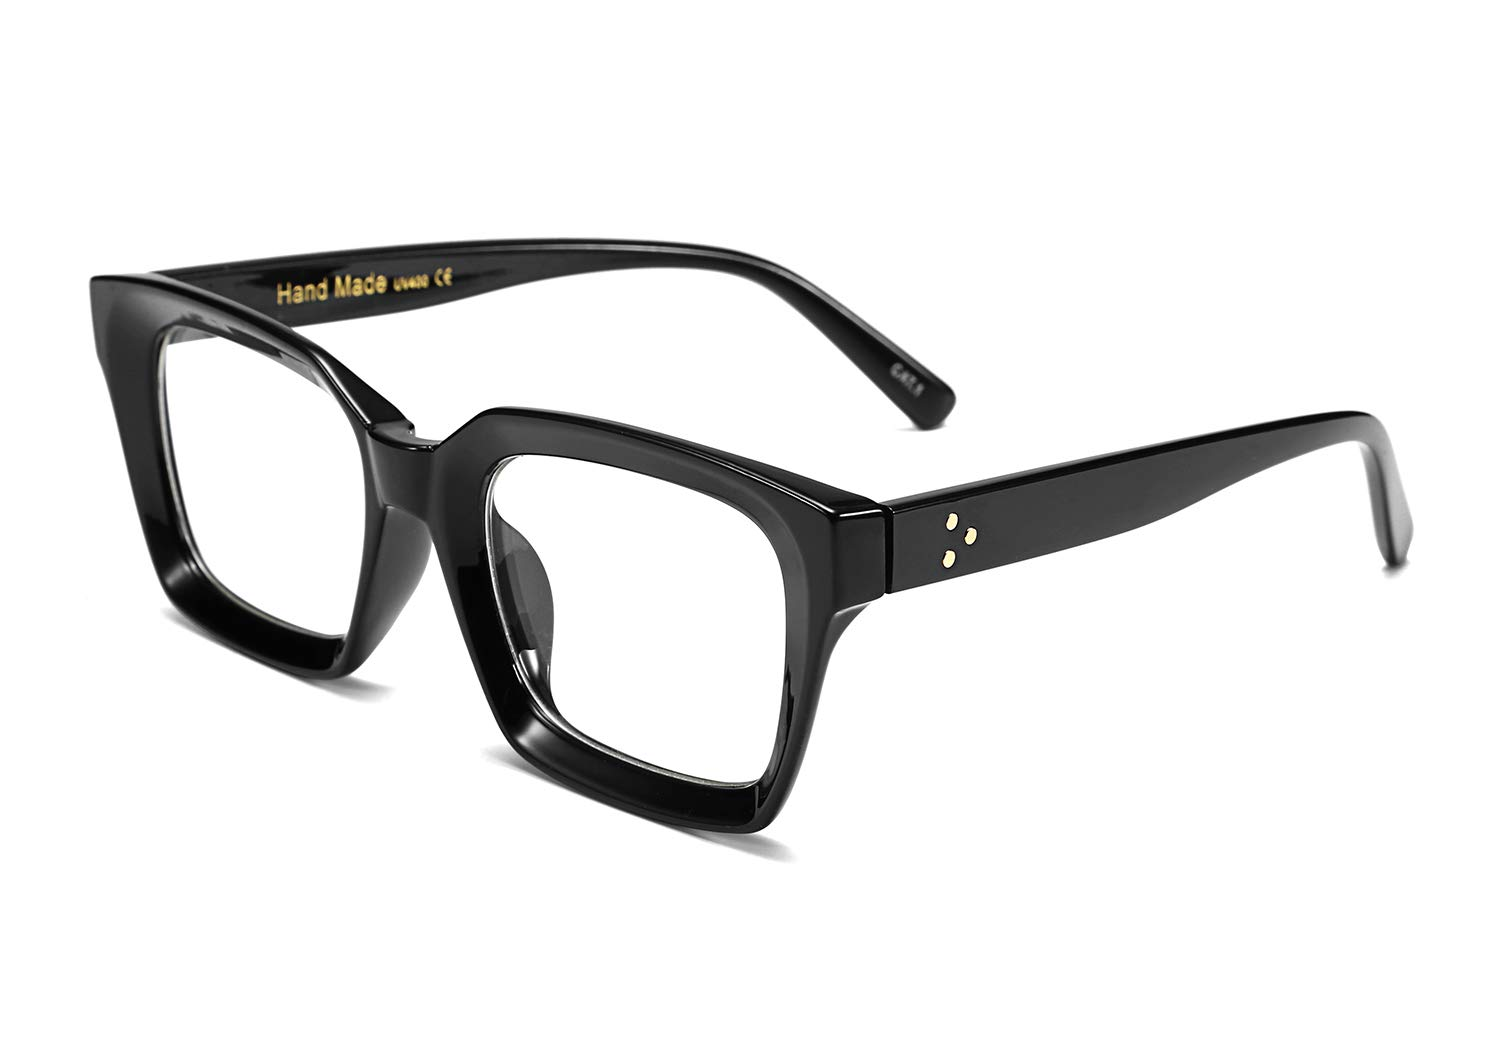 FEISEDY Classic Oprah Square Eyewear Non-prescription Thick Glasses Frame for Women B2461 by FEISEDY